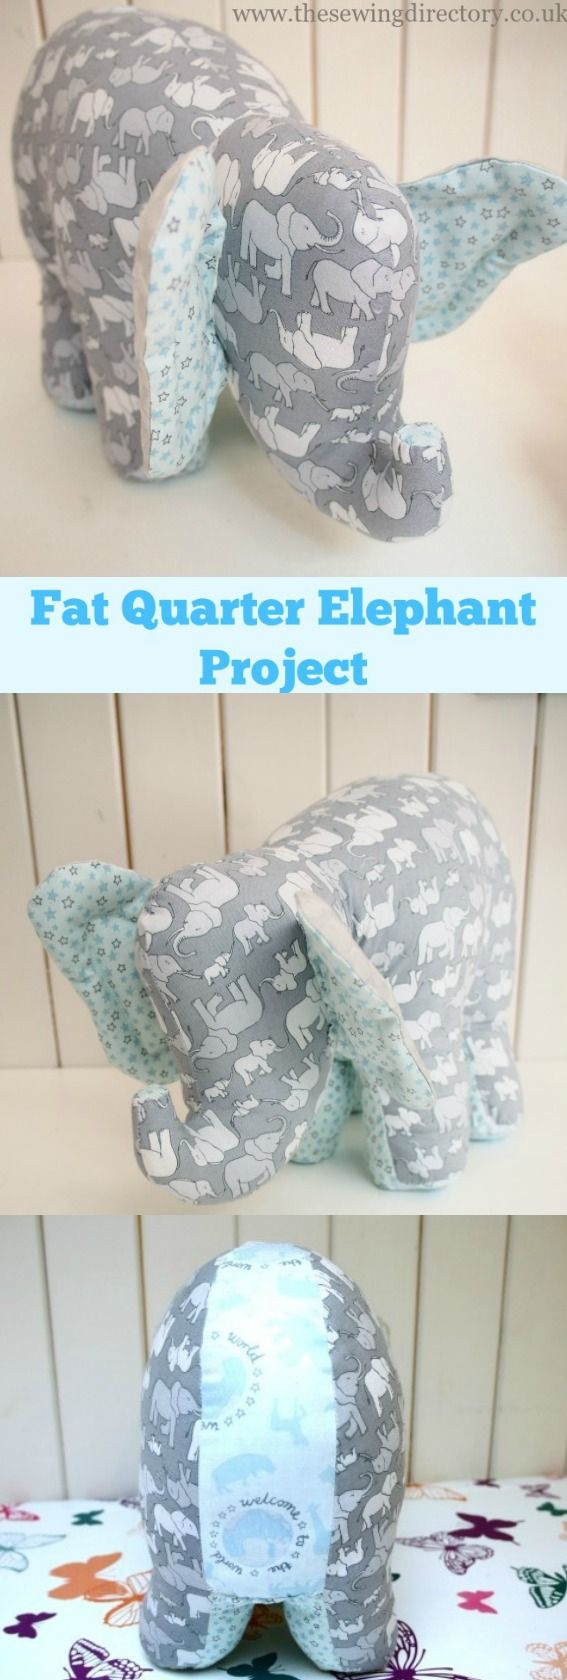 Sew This Adorable Soft Toy Elephant With 4 Fat Quarters Of